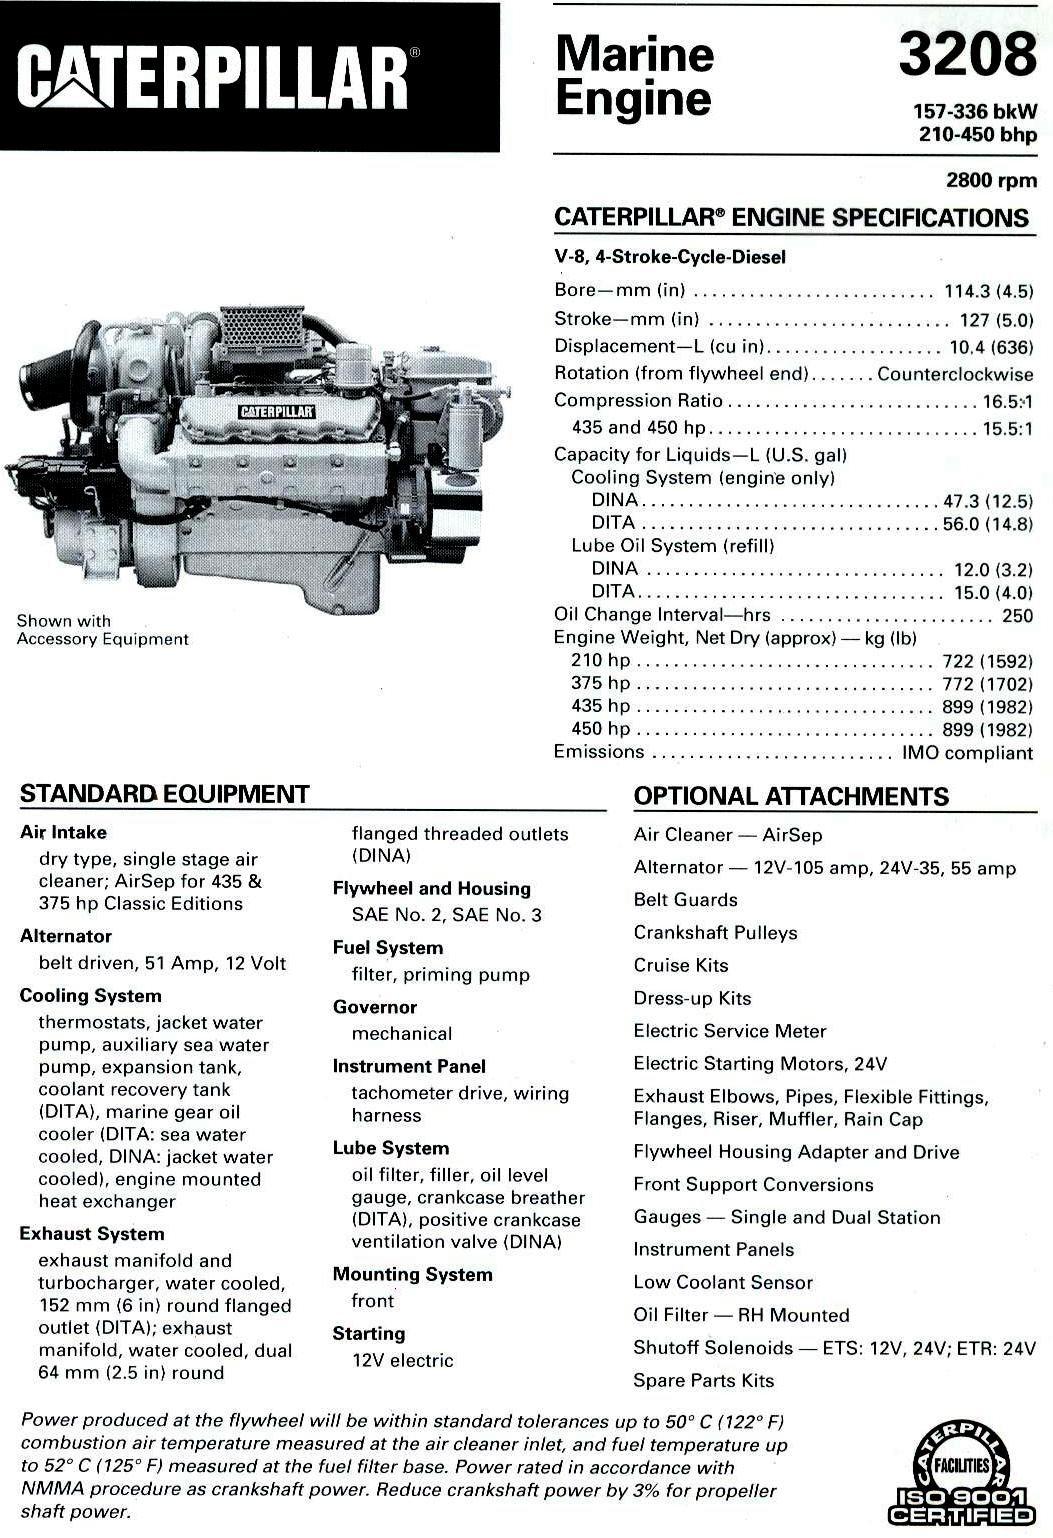 Caterpillar Engine Diagram 232 Free Wiring For You C12 Harness Find The Best Diesel Transmission And Generator 3208 Cat Fuel Pump Breakdown